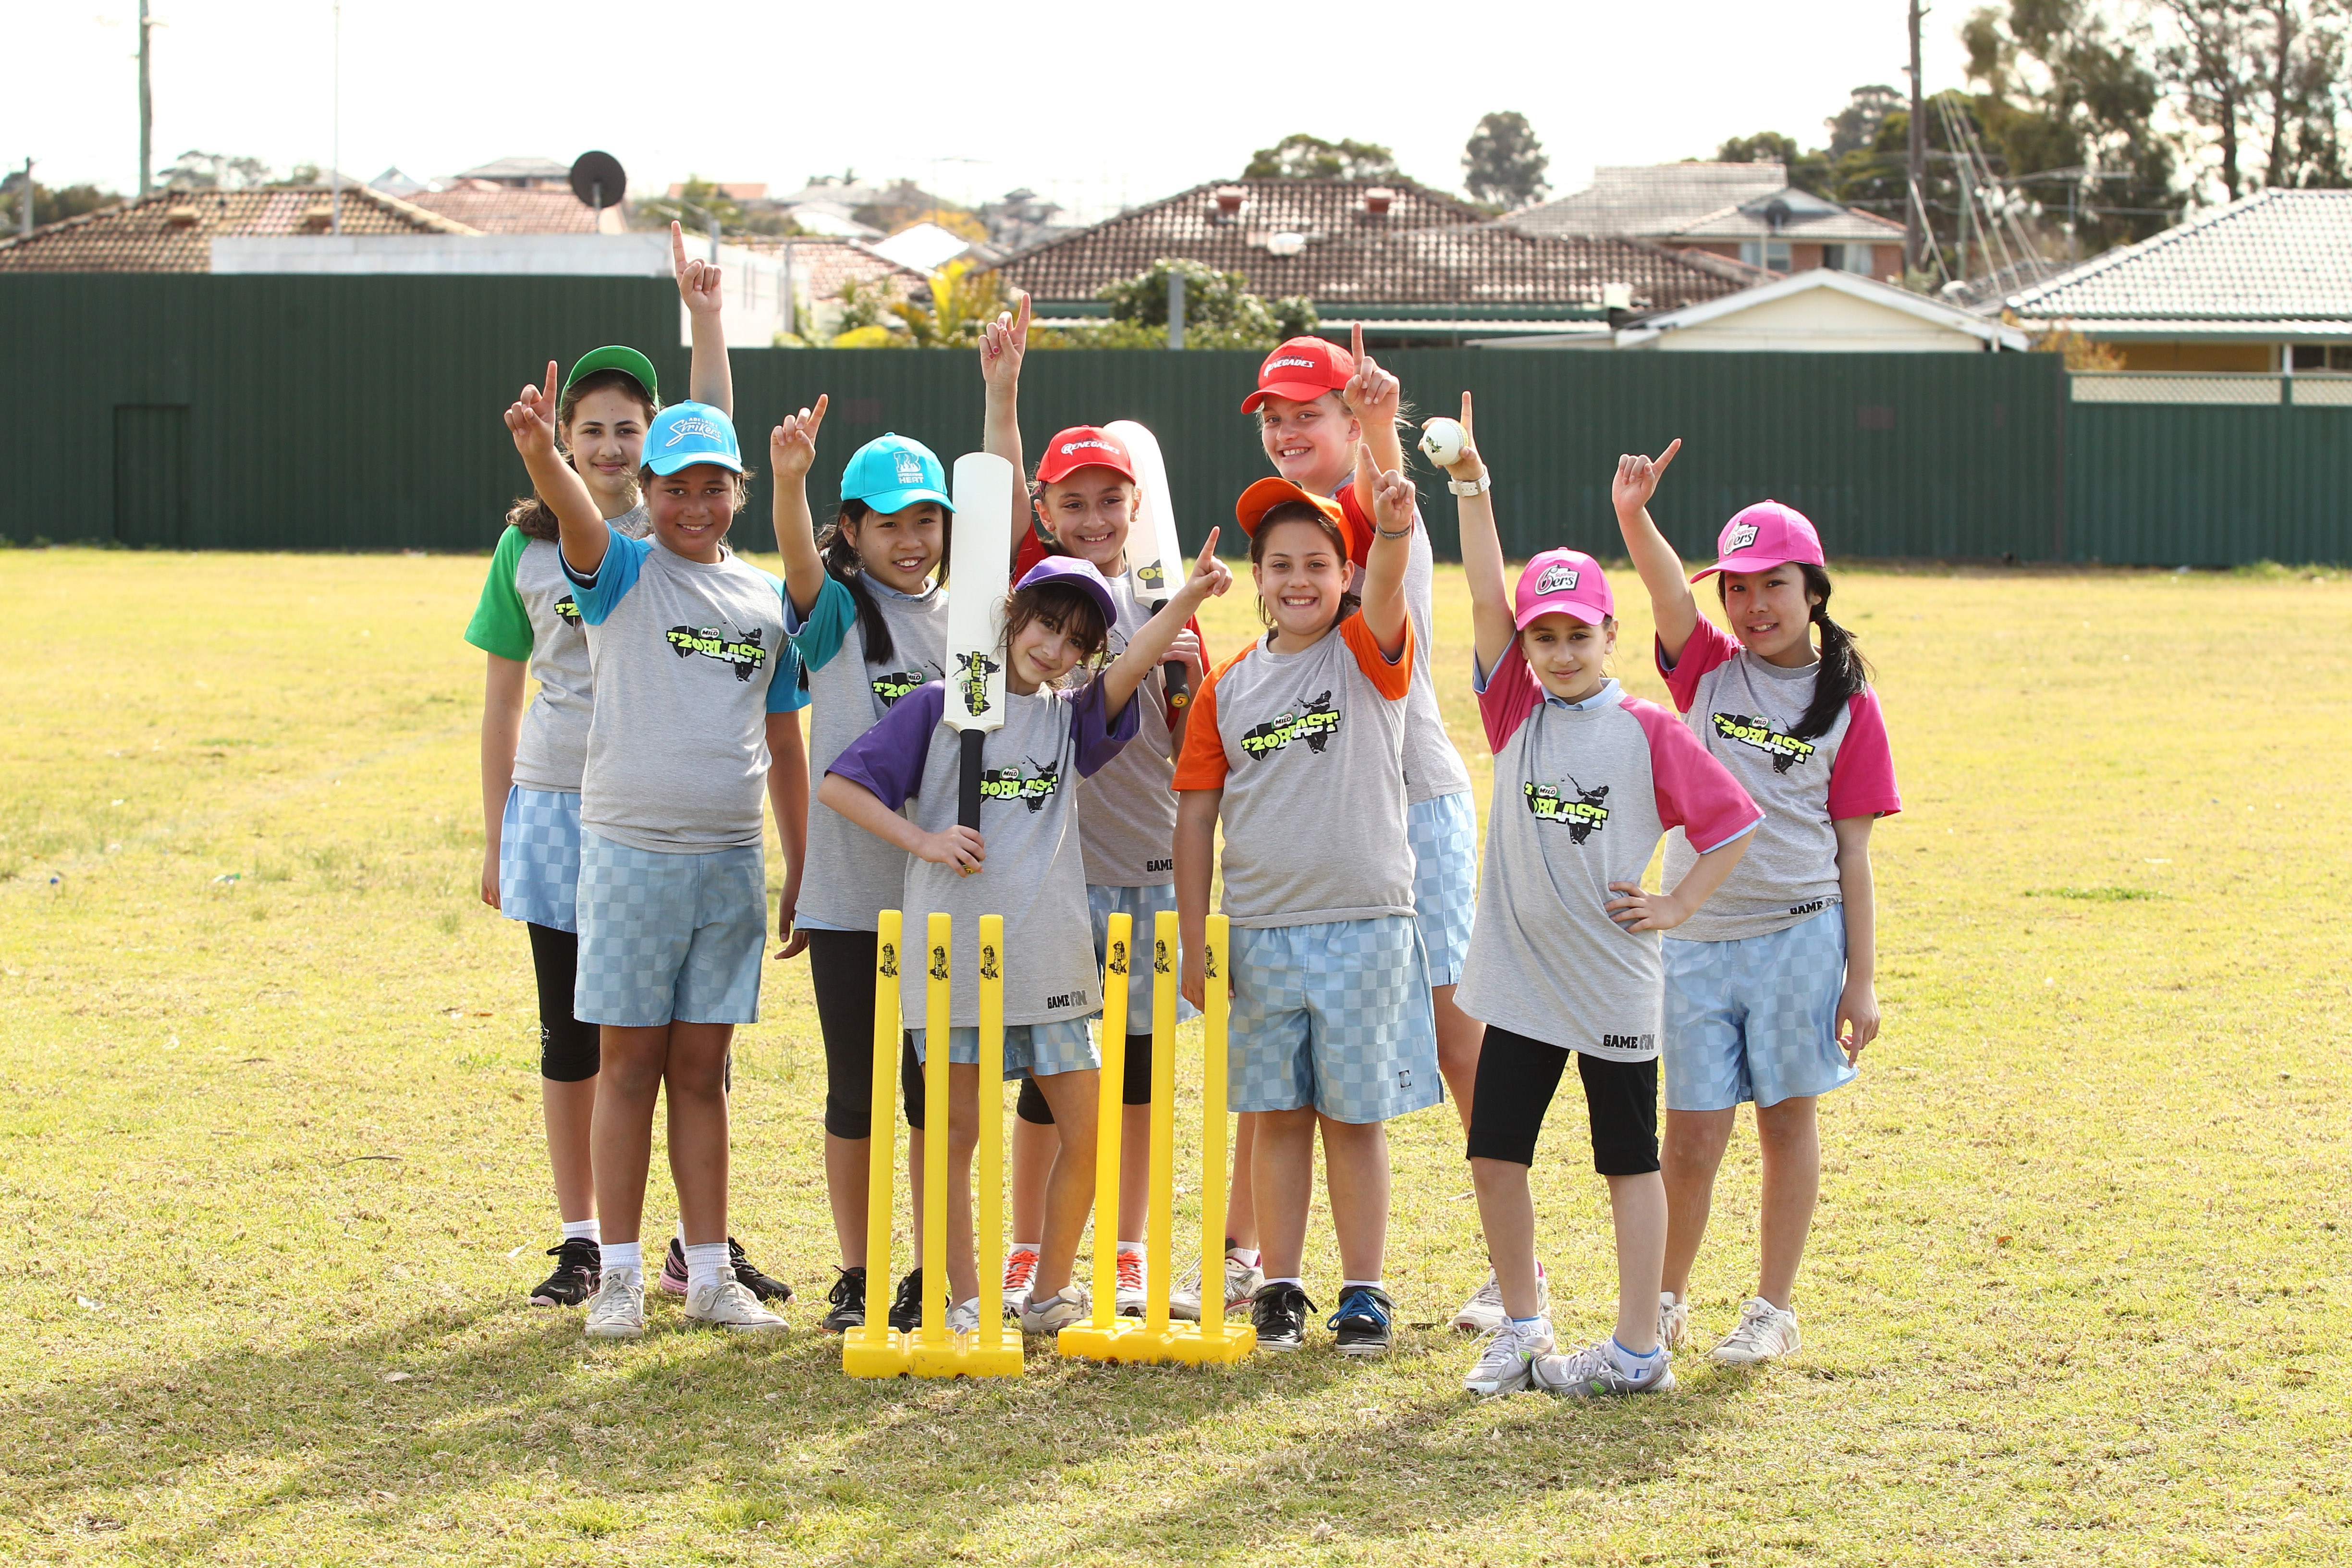 Cricket bats for player records by Sportslink in Cooran QLD